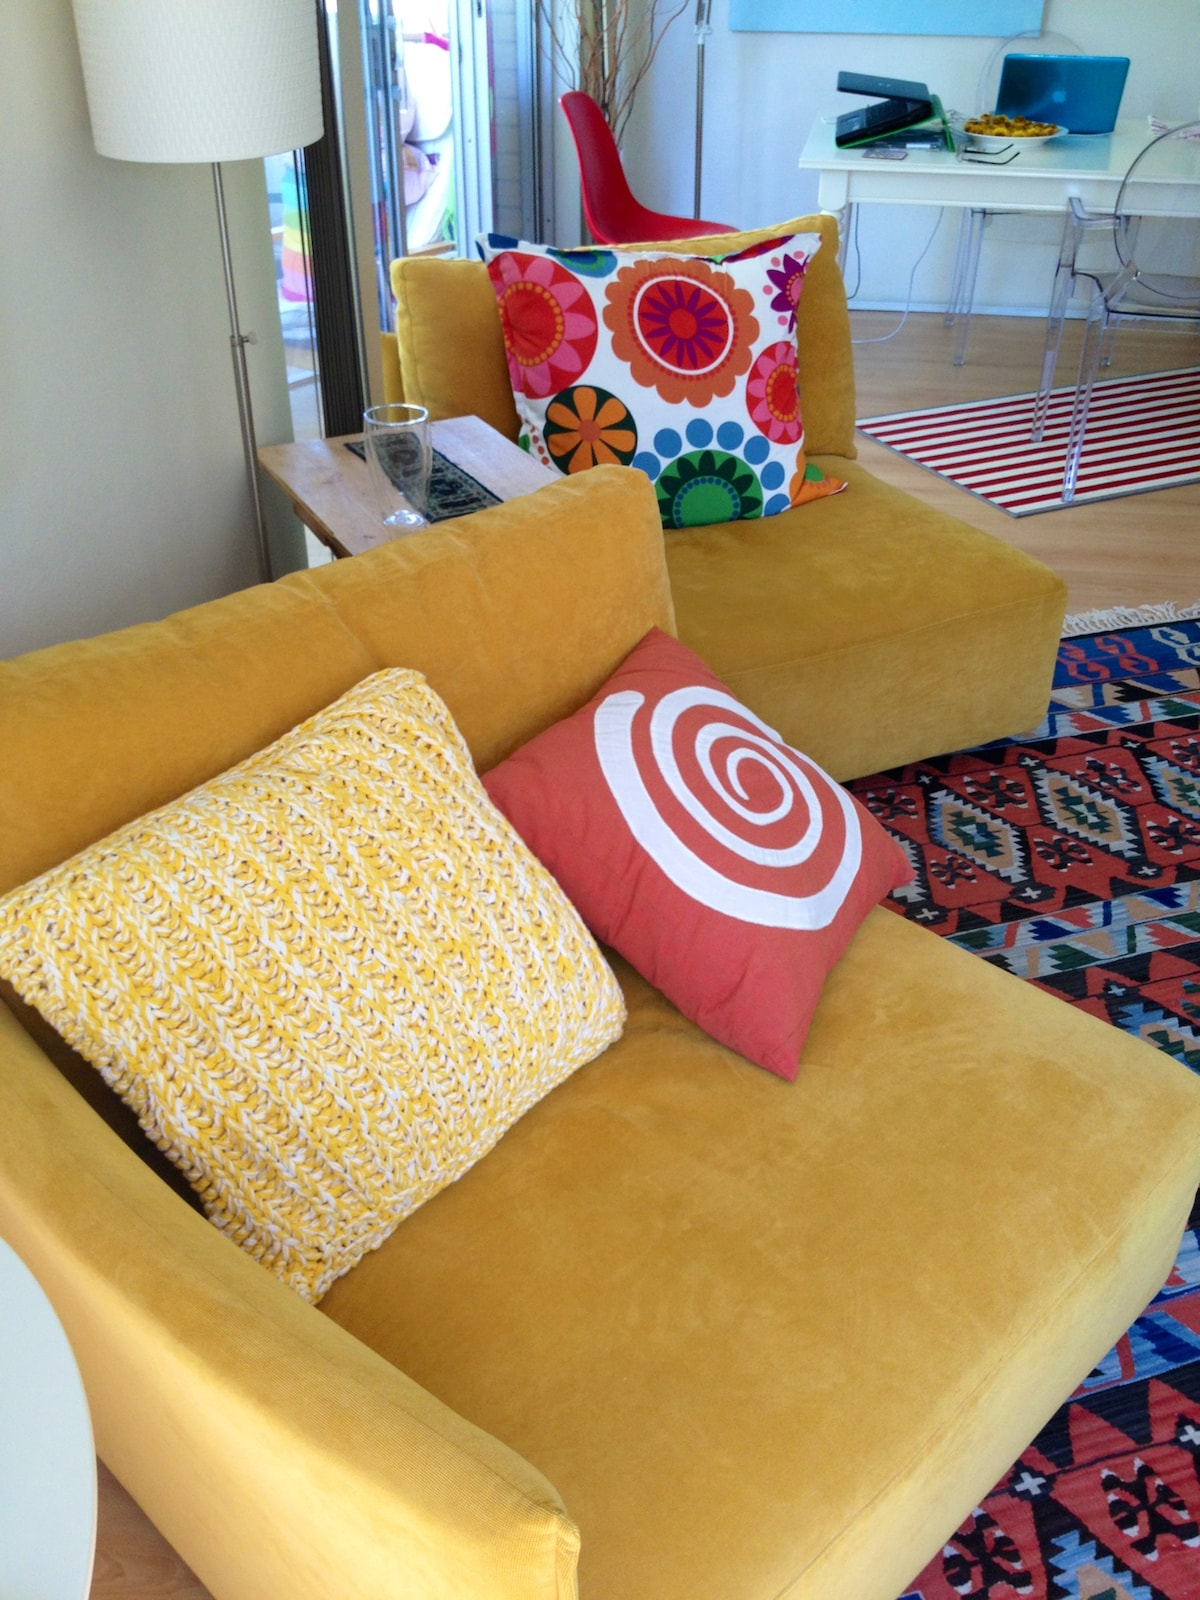 mango colored sofas - lots of color in this living space